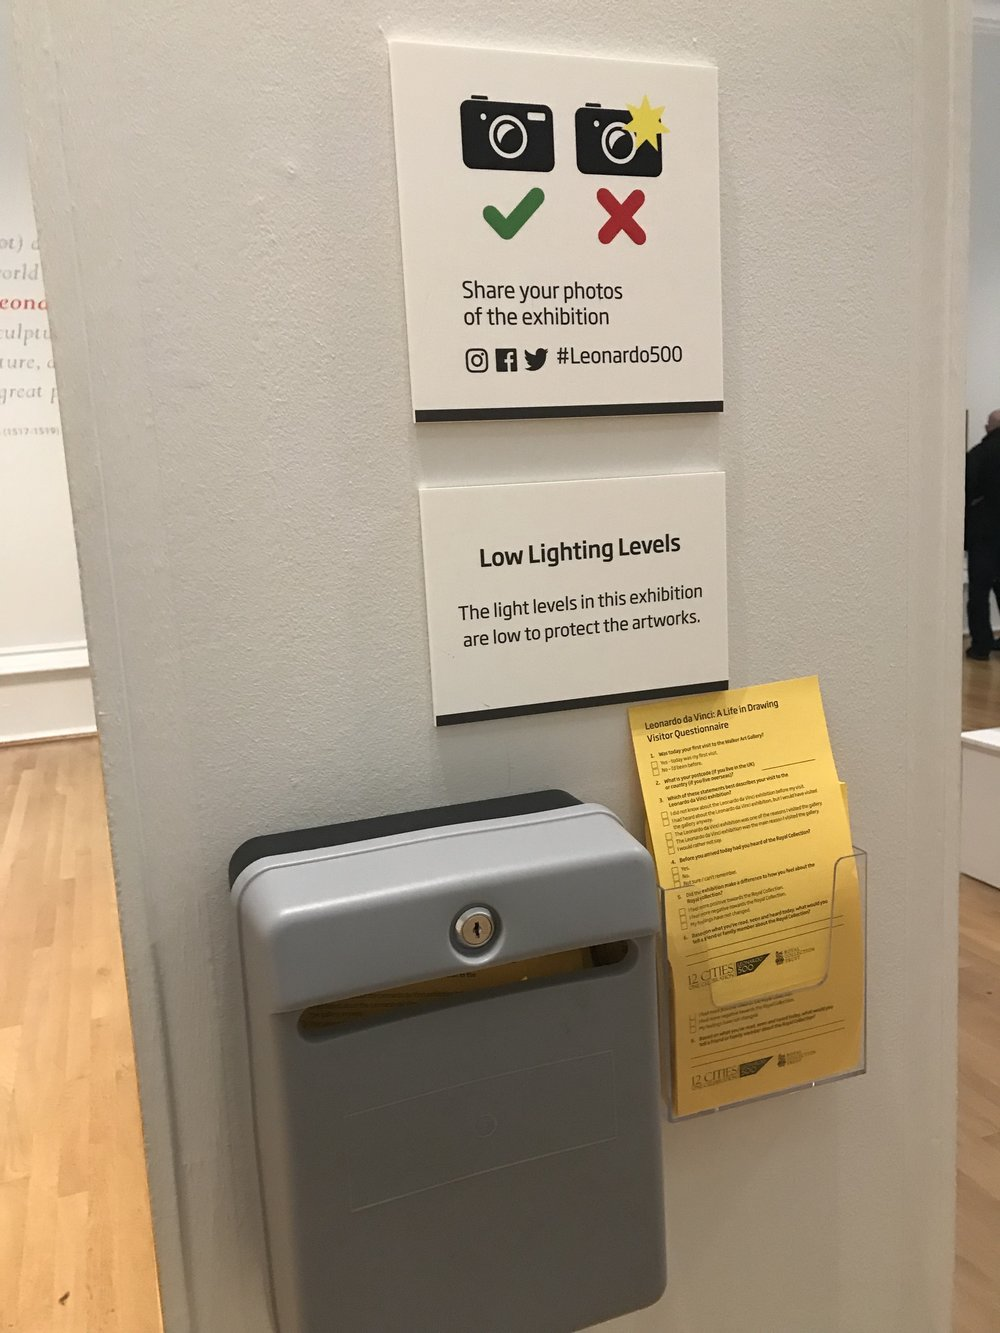 Aspects of the curation were clearly acknowledged and explained through small discreet signage; making the curatorial decisions more transparent.